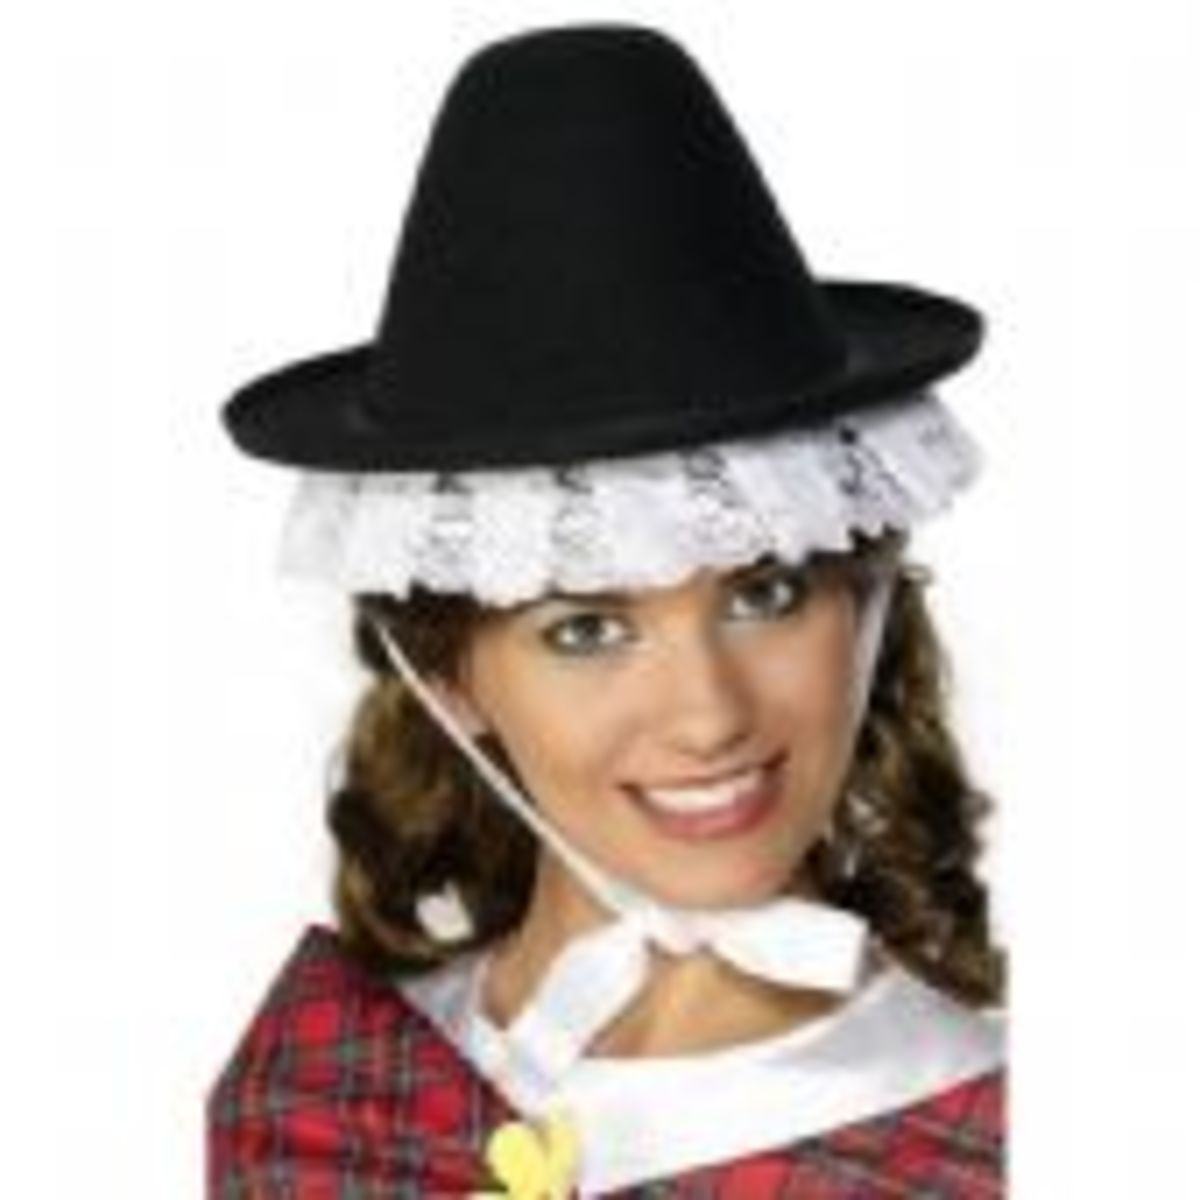 This is a typical Welsh Bonnet. A black hat trimmed with white exposed lace.